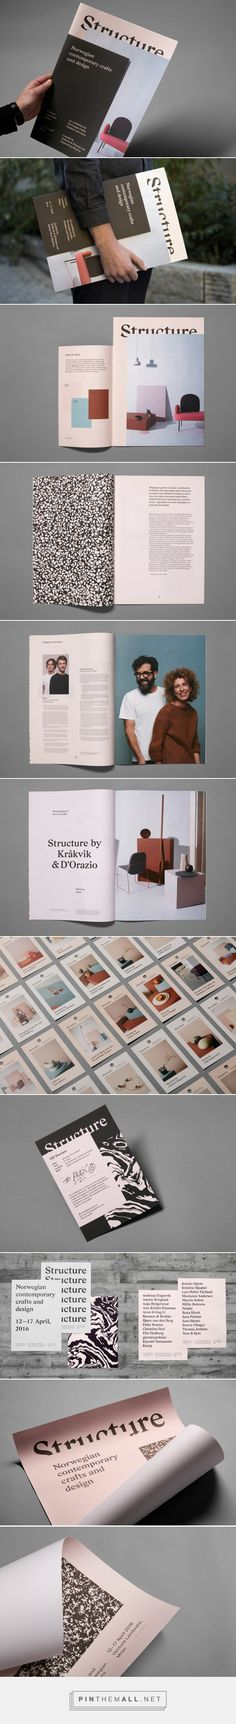 New Brand Identity for Norwegian Structure by Bielke & Yang